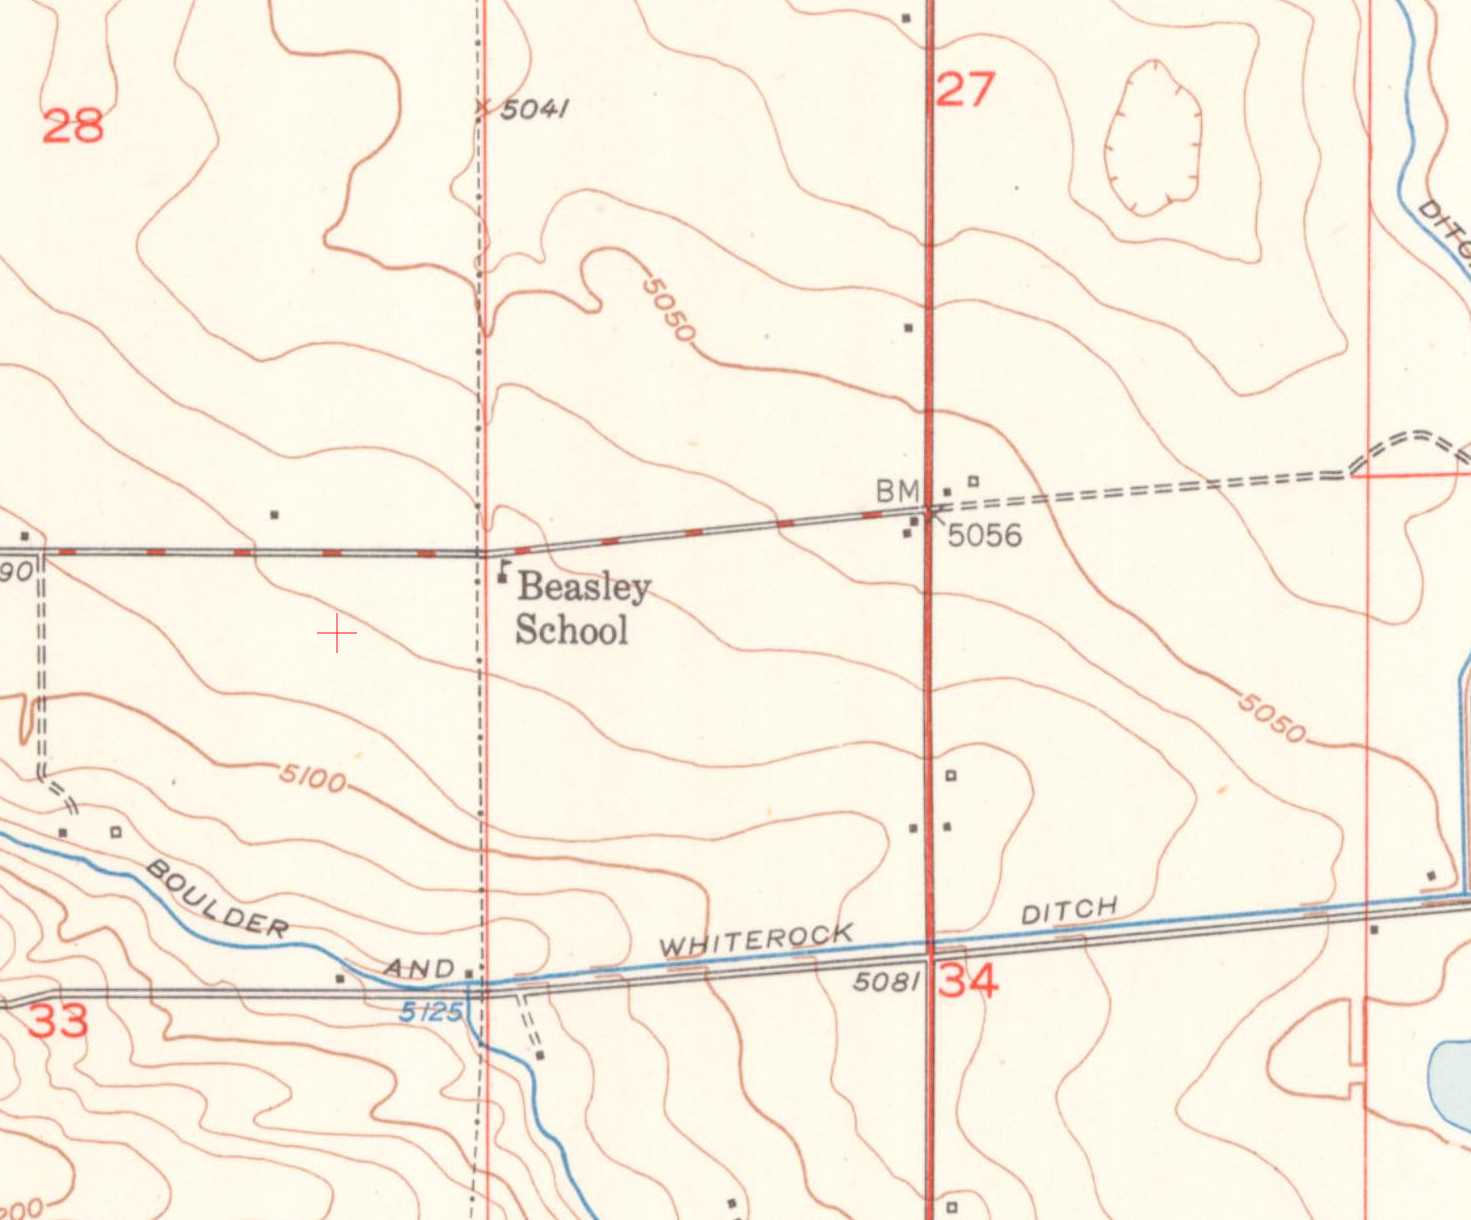 Red North South Road Is Us 287 Niwot Road Is East West Dashed Red Gray Road